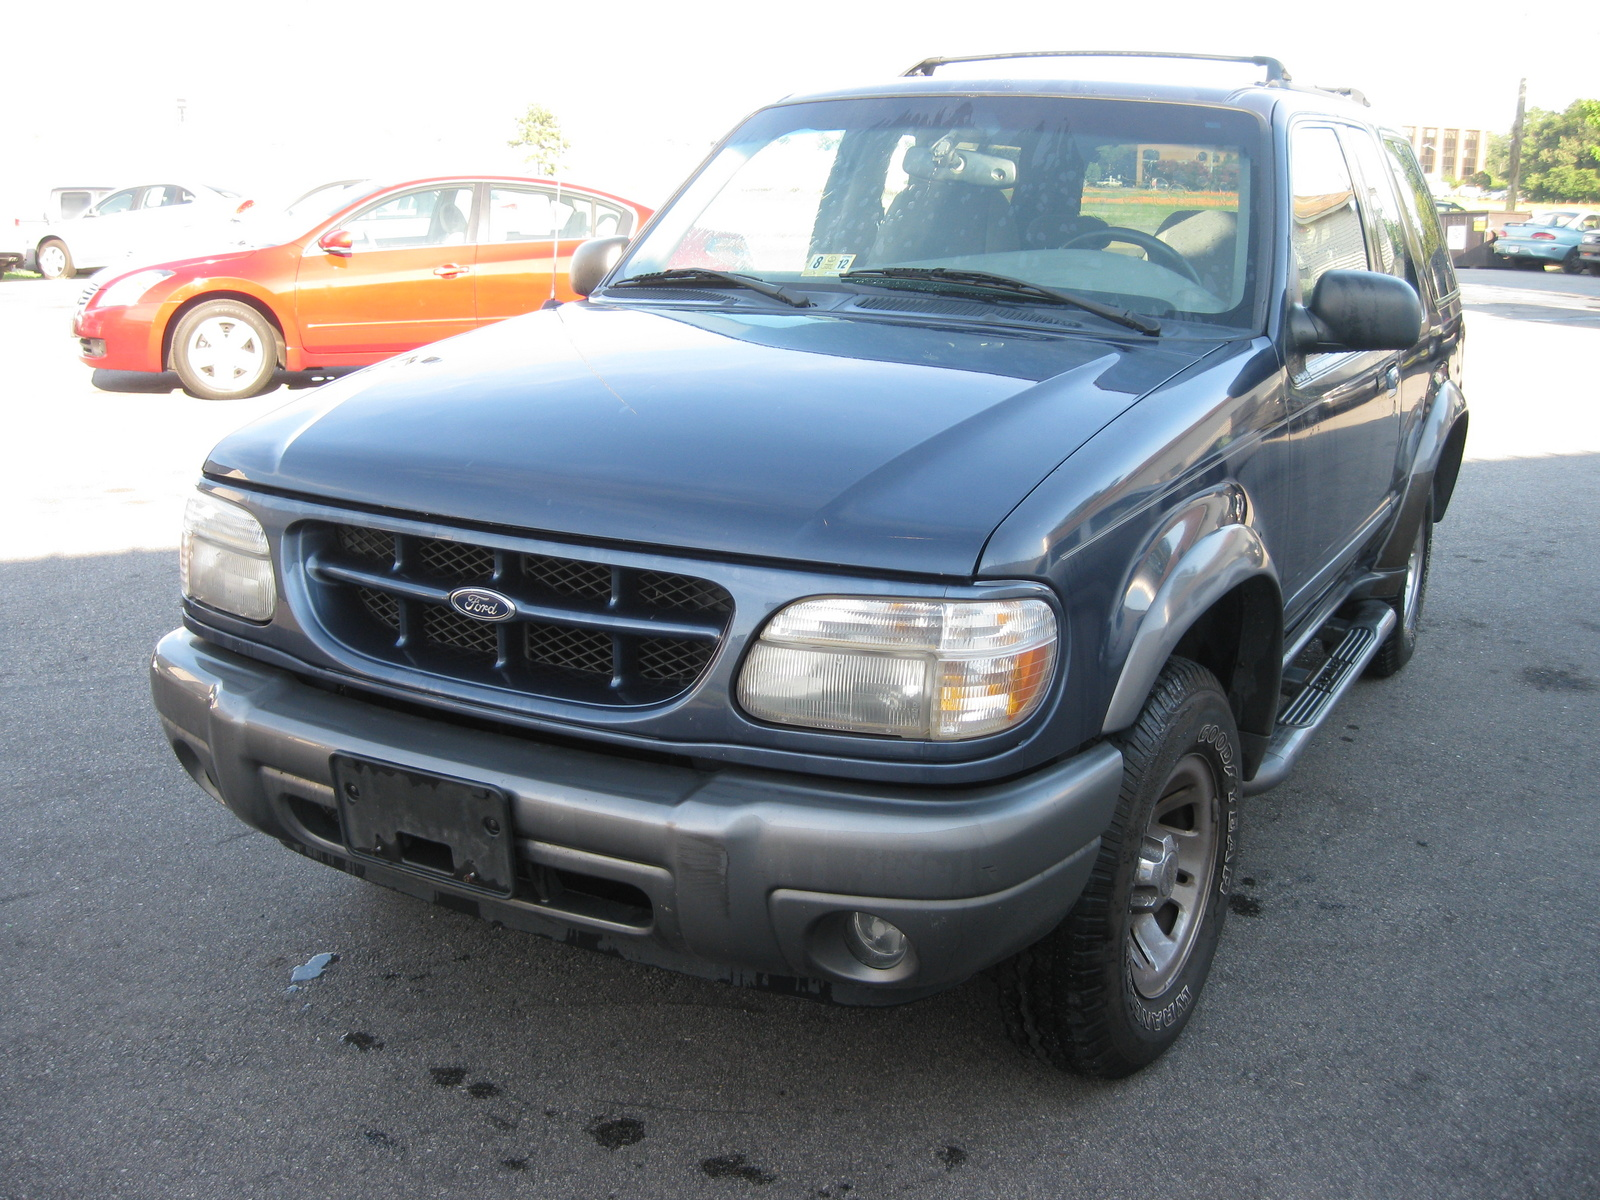 2000 ford explorer 2 dr sport trim overview. Cars Review. Best American Auto & Cars Review